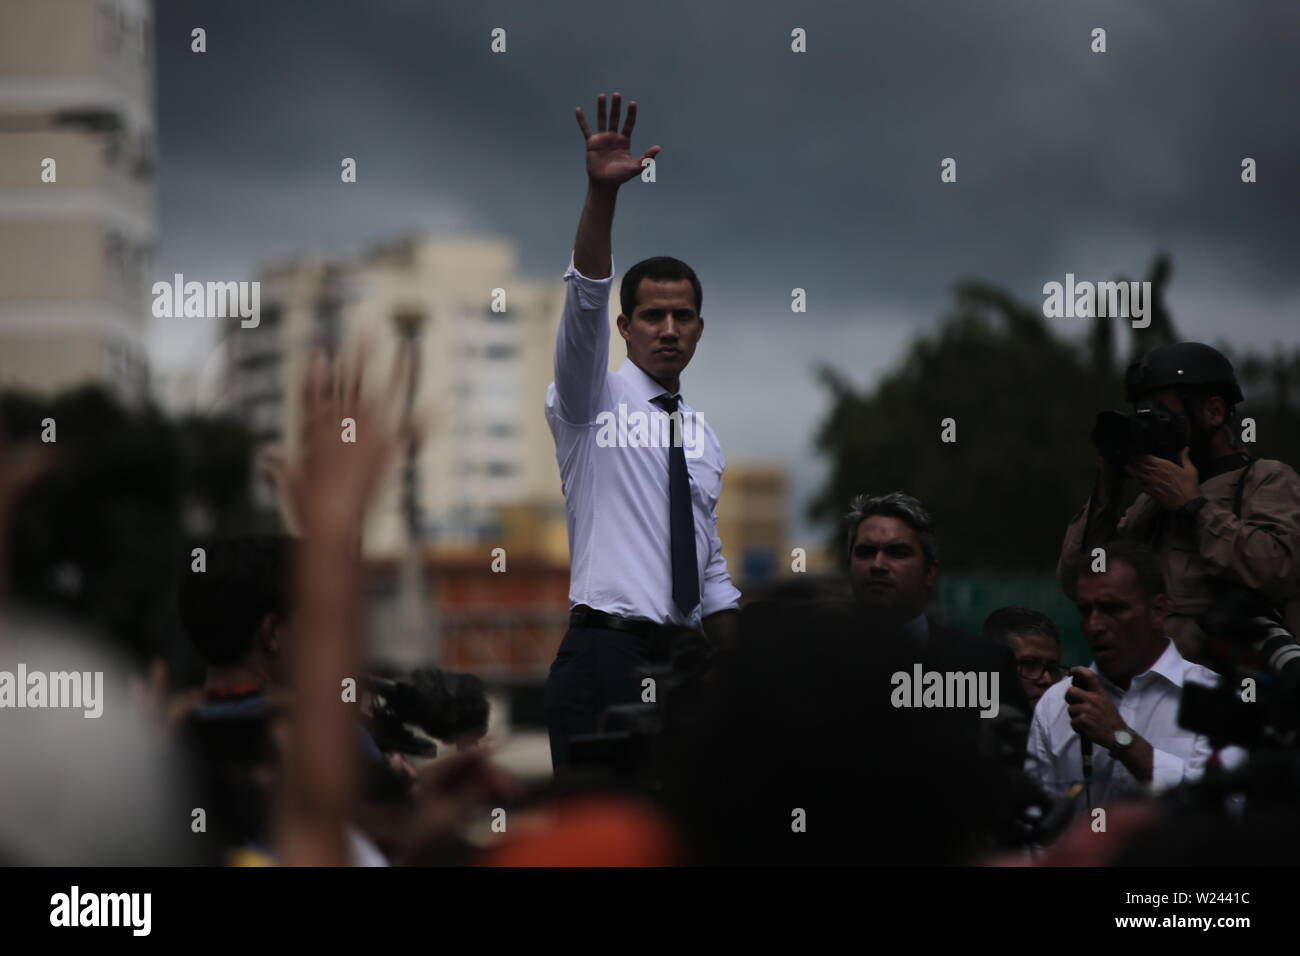 Caracas, Venezuela. 05th July, 2019. Juan Guaido, self-proclaimed interim president of Venezuela, waves to supporters at a protest on Independence Day. Guaido has called on civil society to protest against the government of Head of State Maduro. Venezuela commemorates on July 5 the independence of Spain in 1811. Credit: Rafael Hernandez/dpa/Alamy Live News - Stock Image